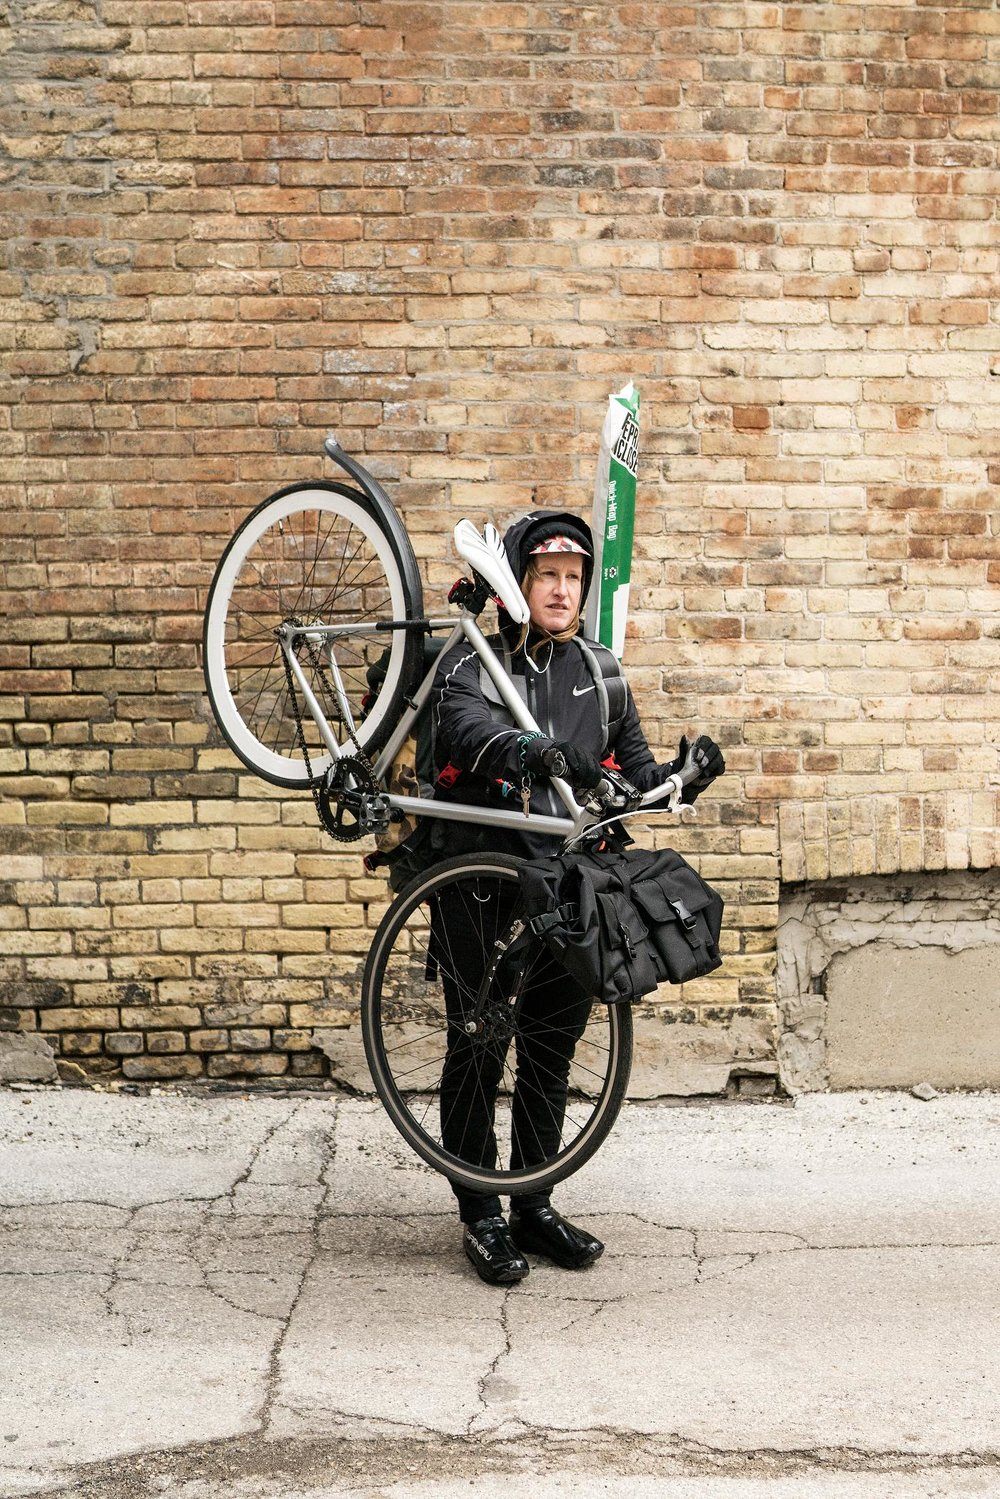 Heather, Bicycle Messenger and Bicycle Mechanic // 16% of Couriers and Messengers are Women